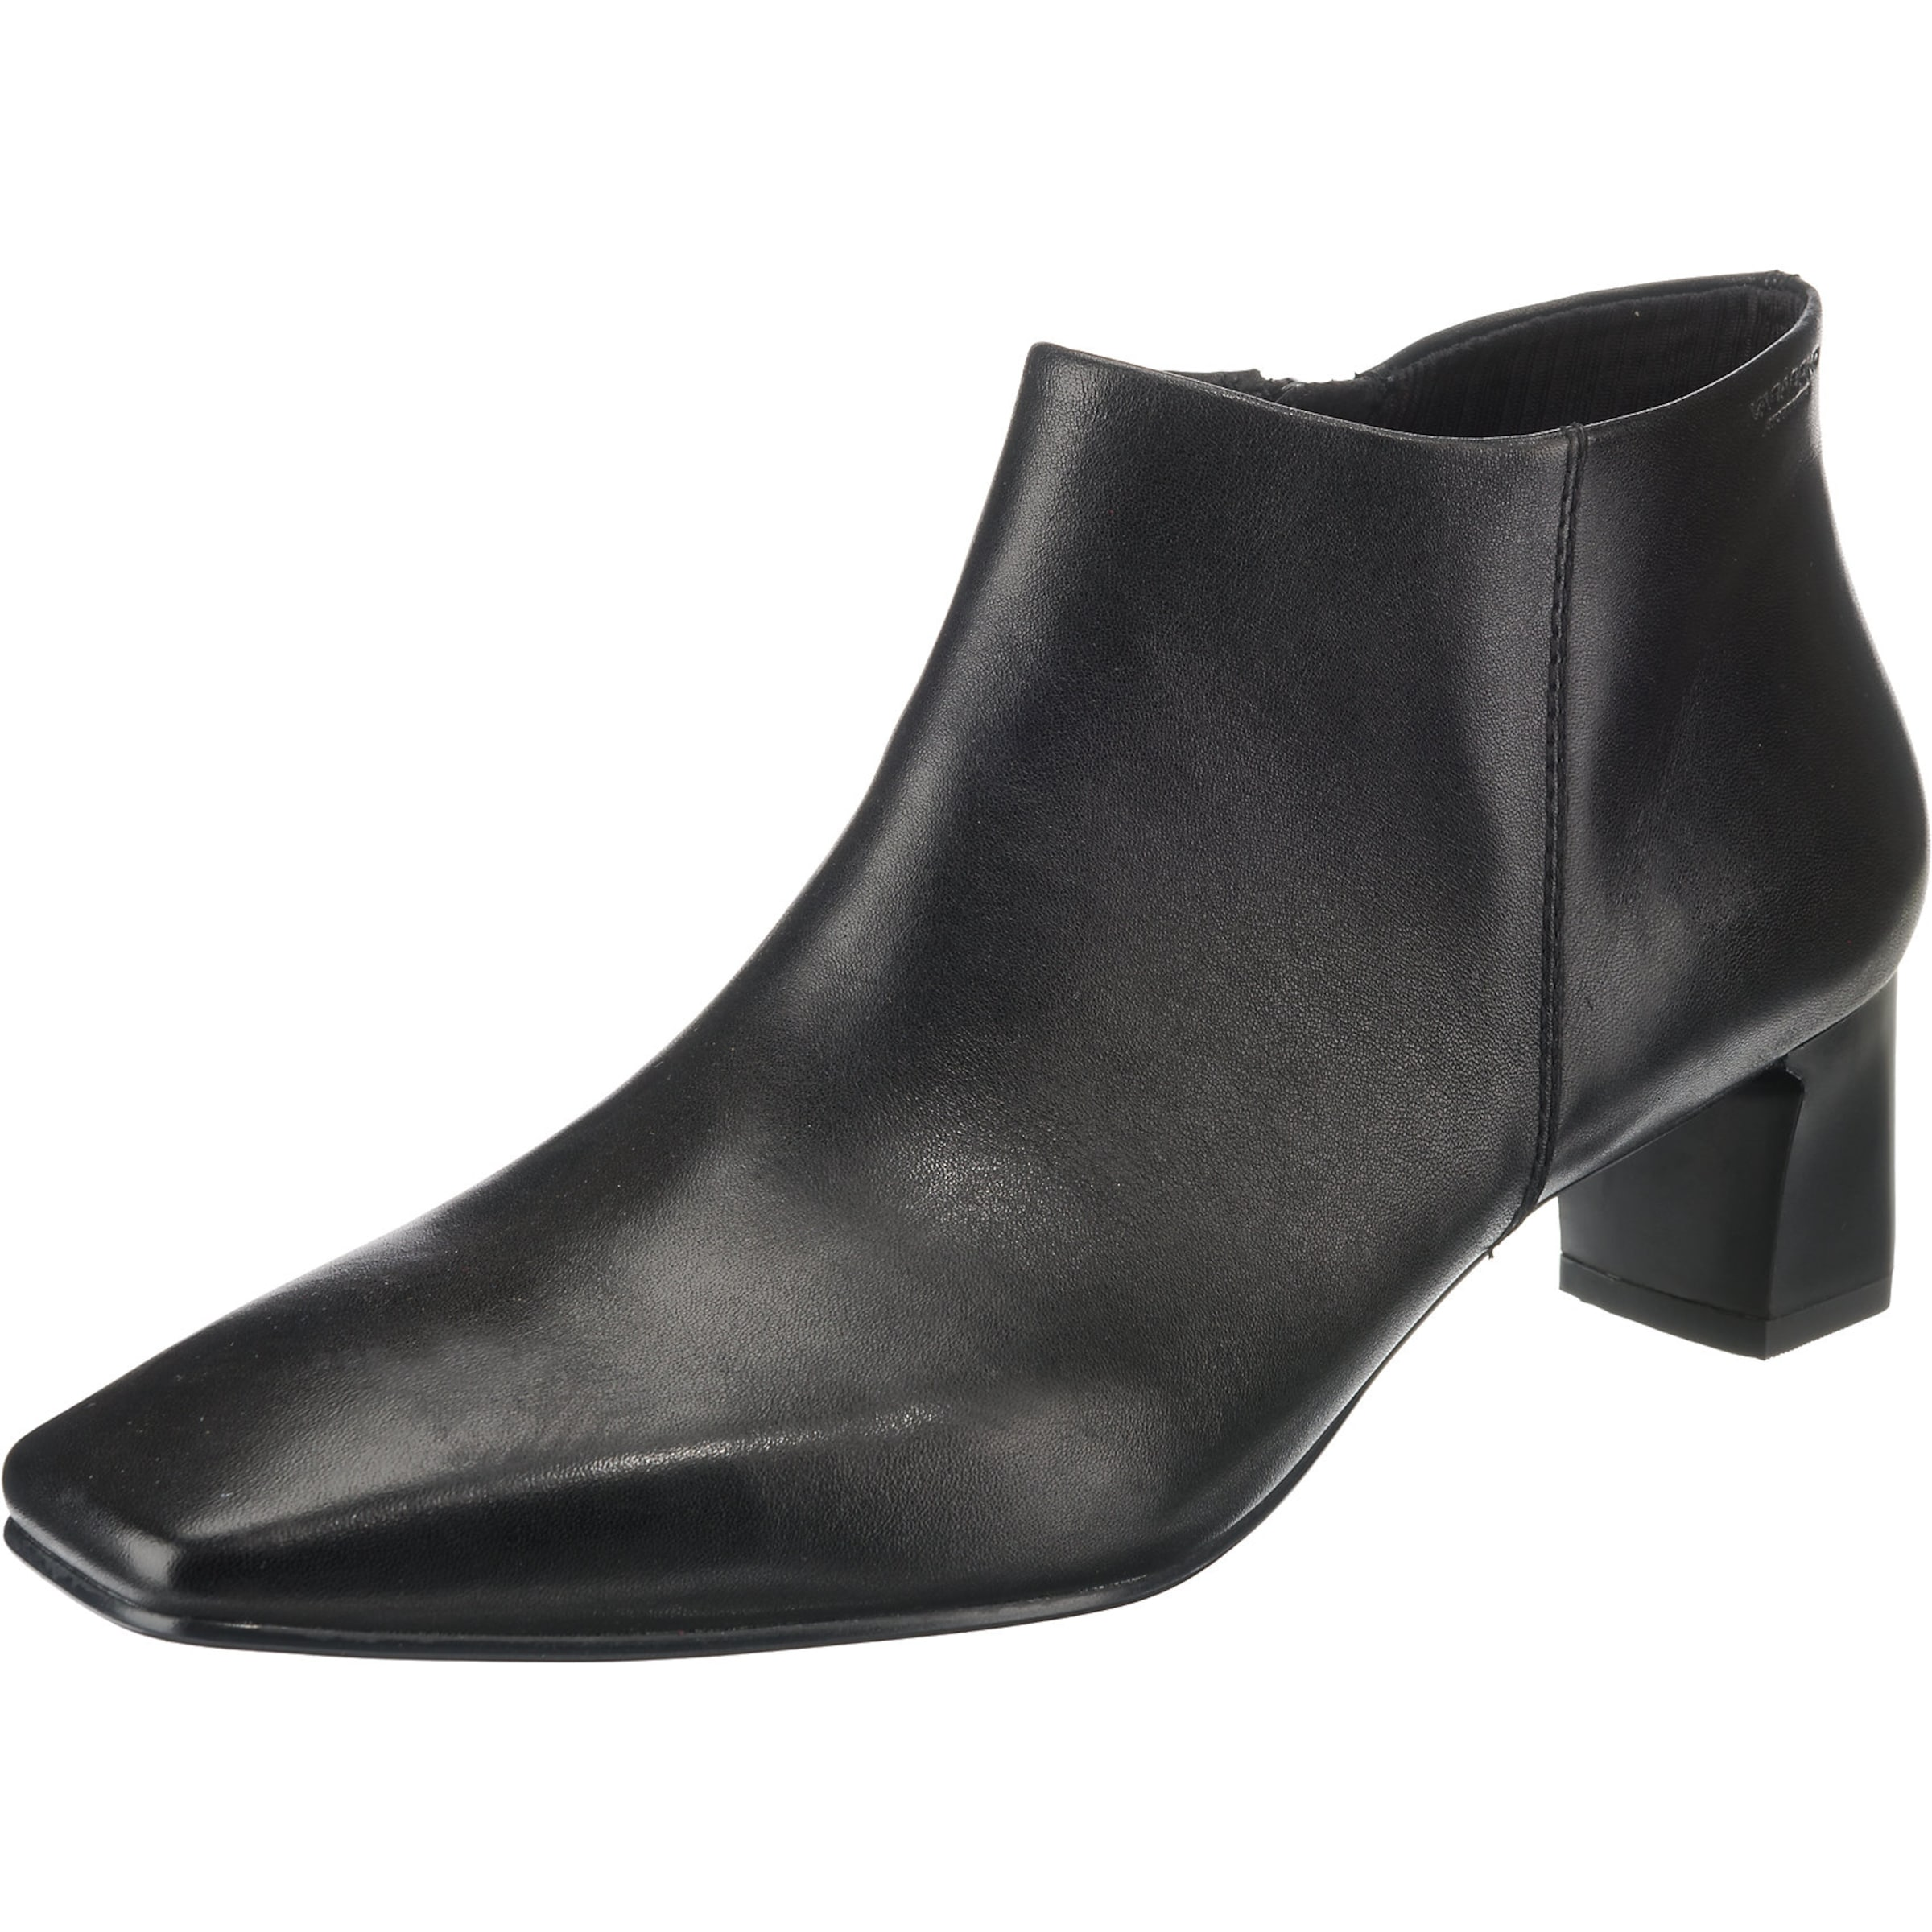 VAGABOND SHOEMAKERS Ankle Boots  Ebba